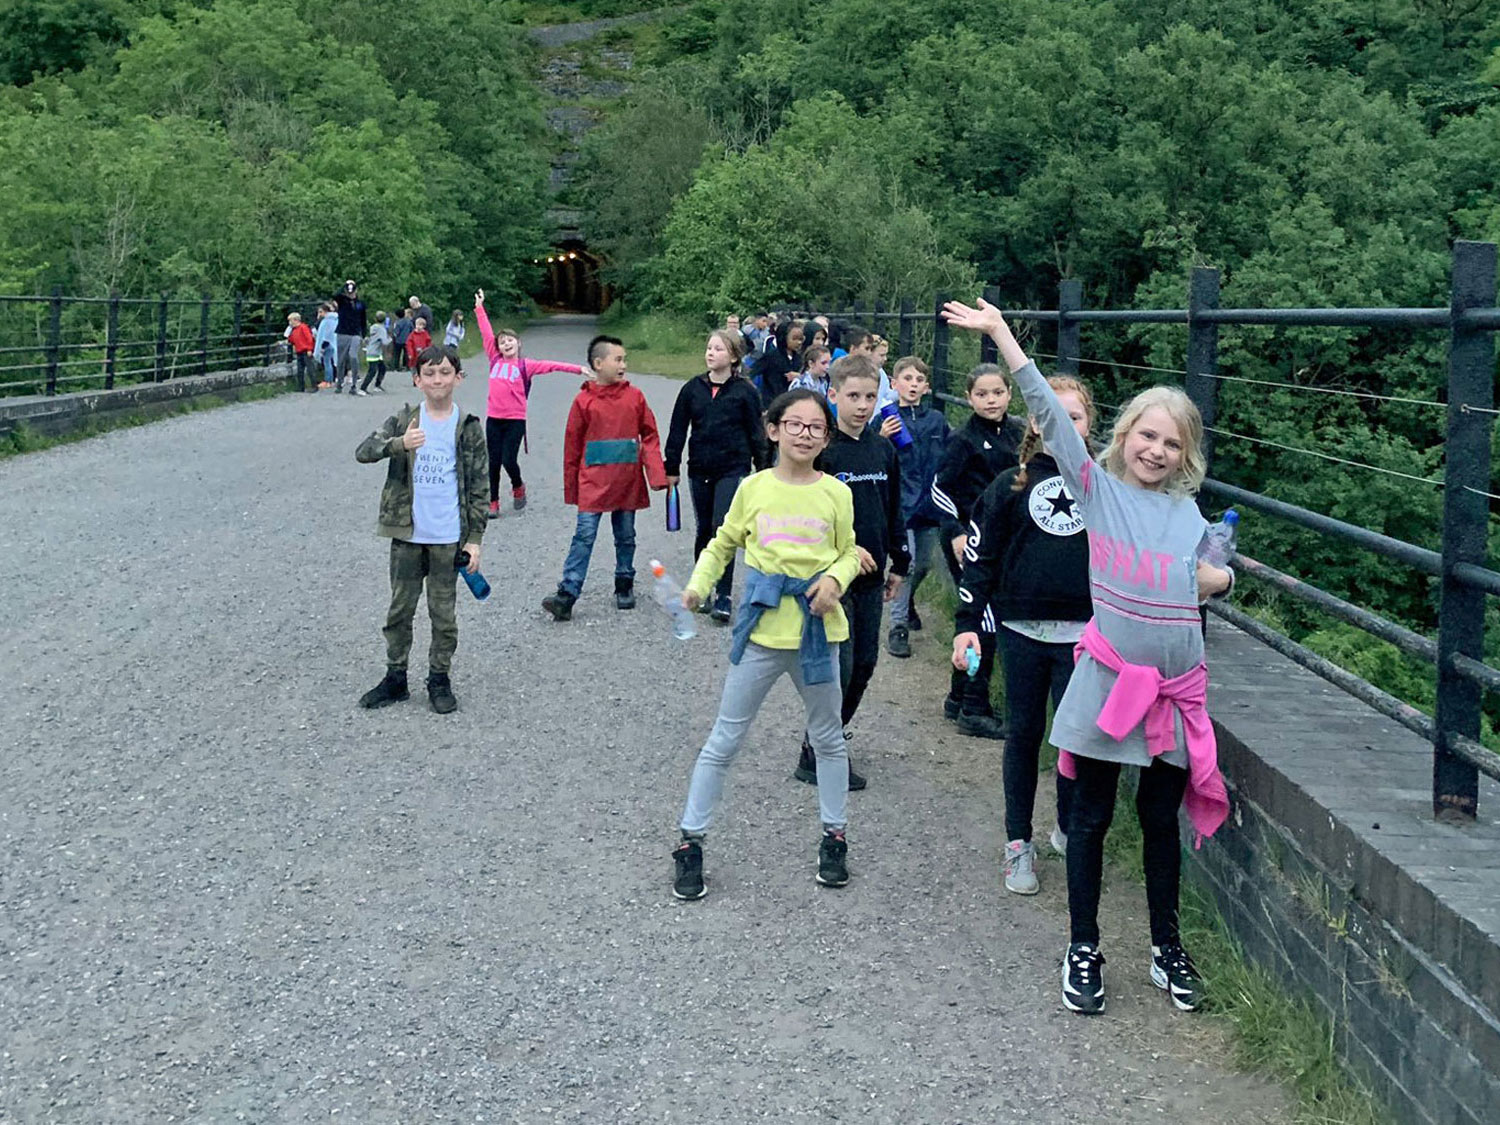 School children wave and smile for the camera as they stroll along the viaduct